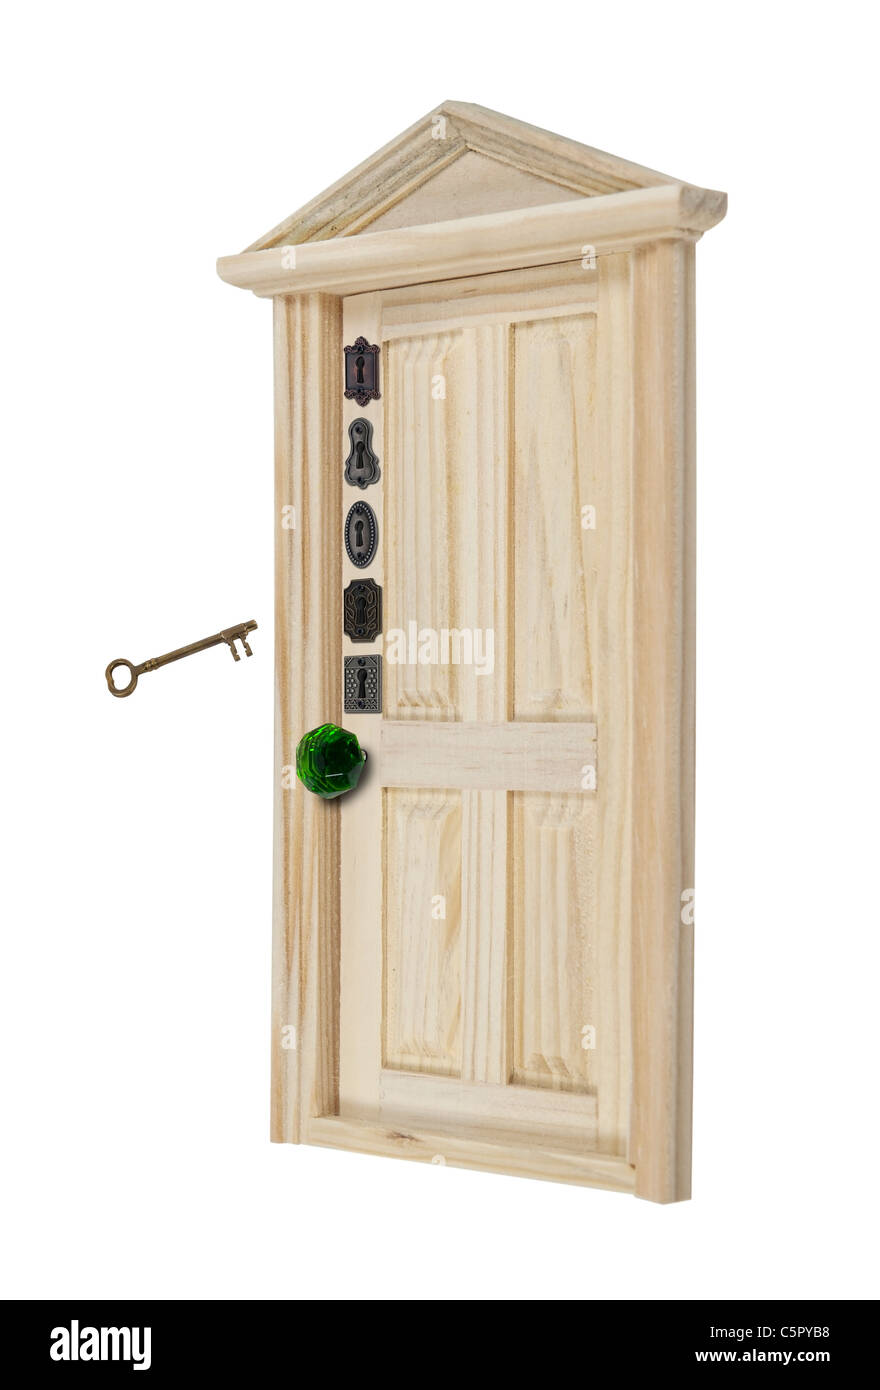 Home security shown by a wooden door with a variety of locks - path included - Stock Image